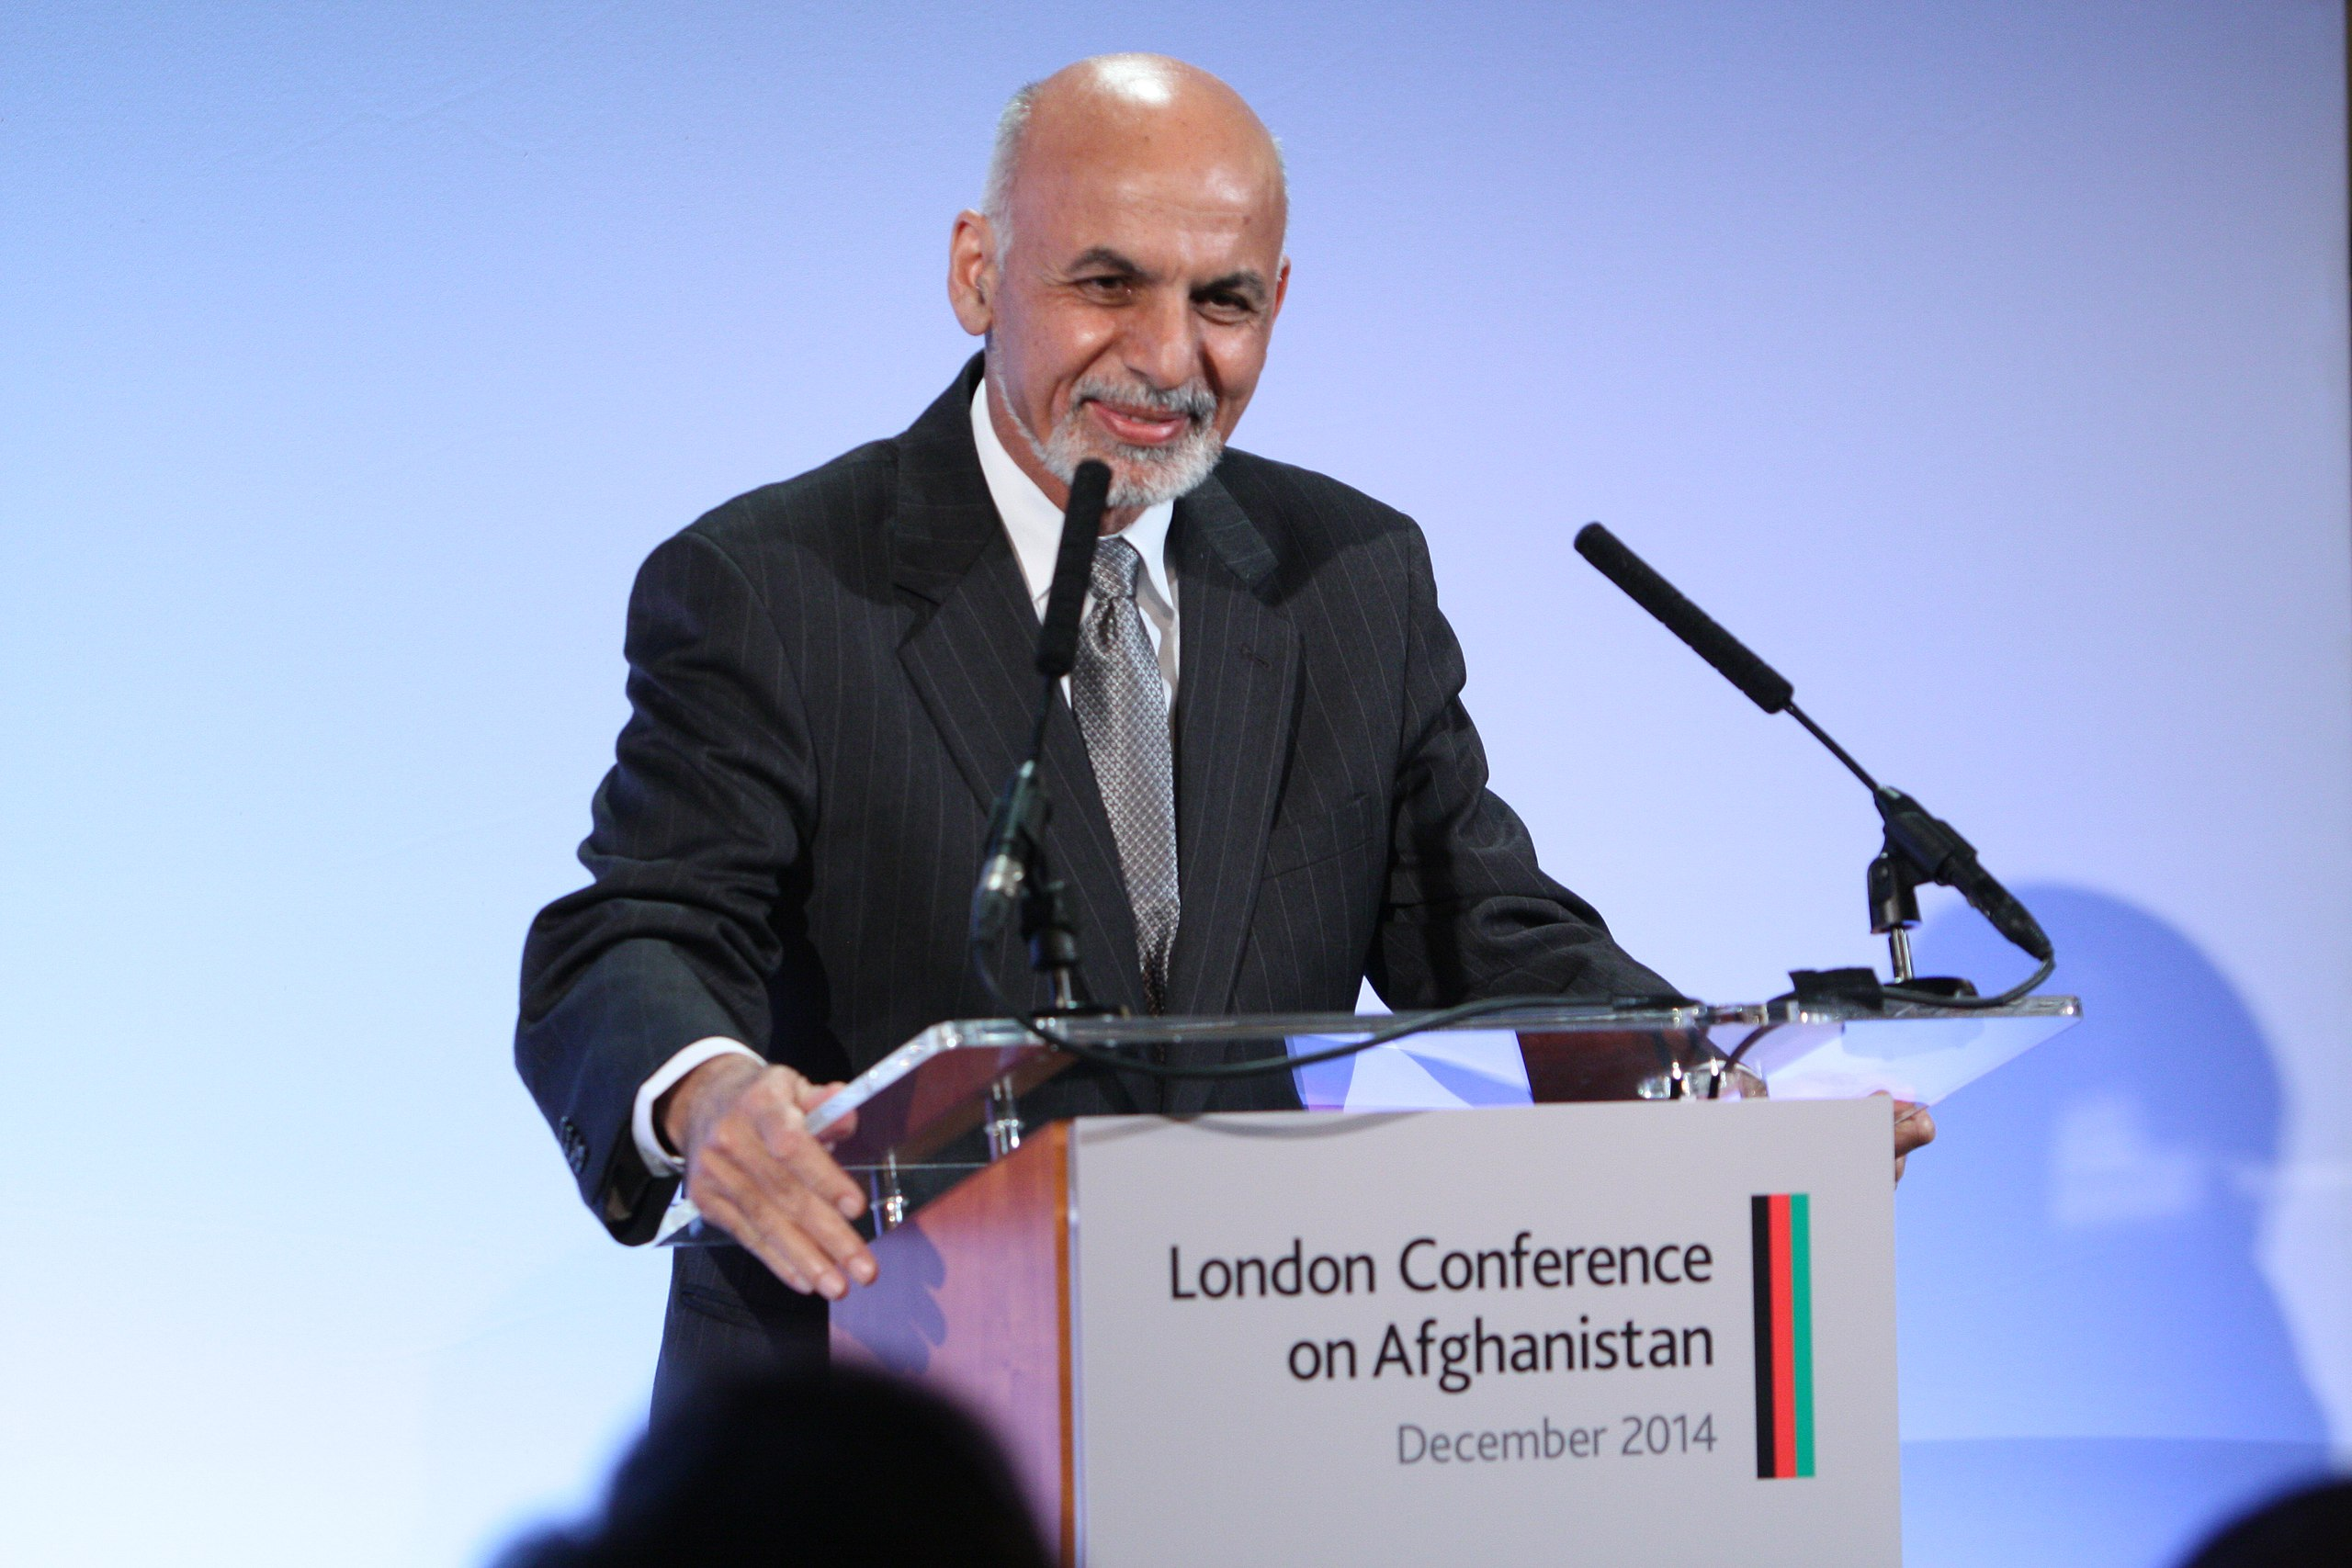 Ashraf Ghani Settles In United Arab Emirates After Fleeing Afghanistan With Helicopter Full Of Cash